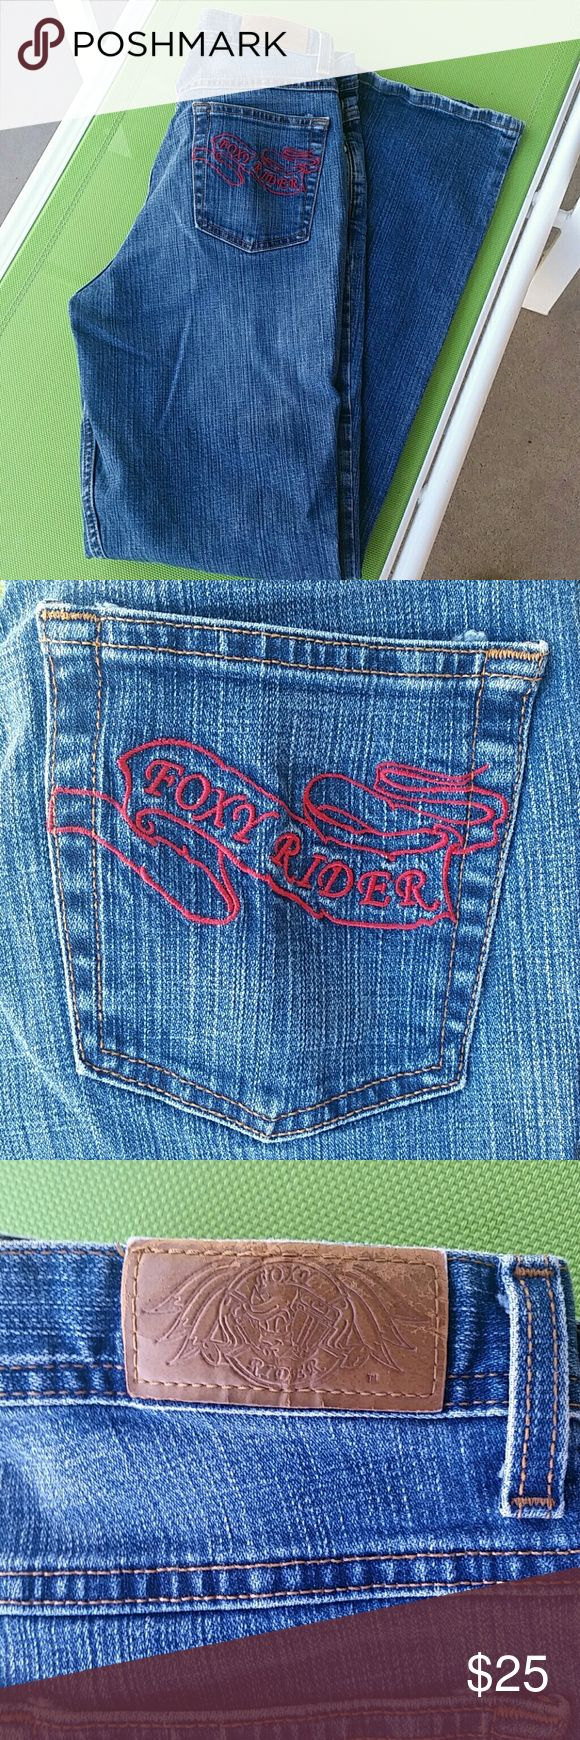 FOXY RIDER JEANS, HARDLY WORN. Foxy Rider jeans, gently worn. Excellent condition. Foxy Rider  Jeans Boot Cut